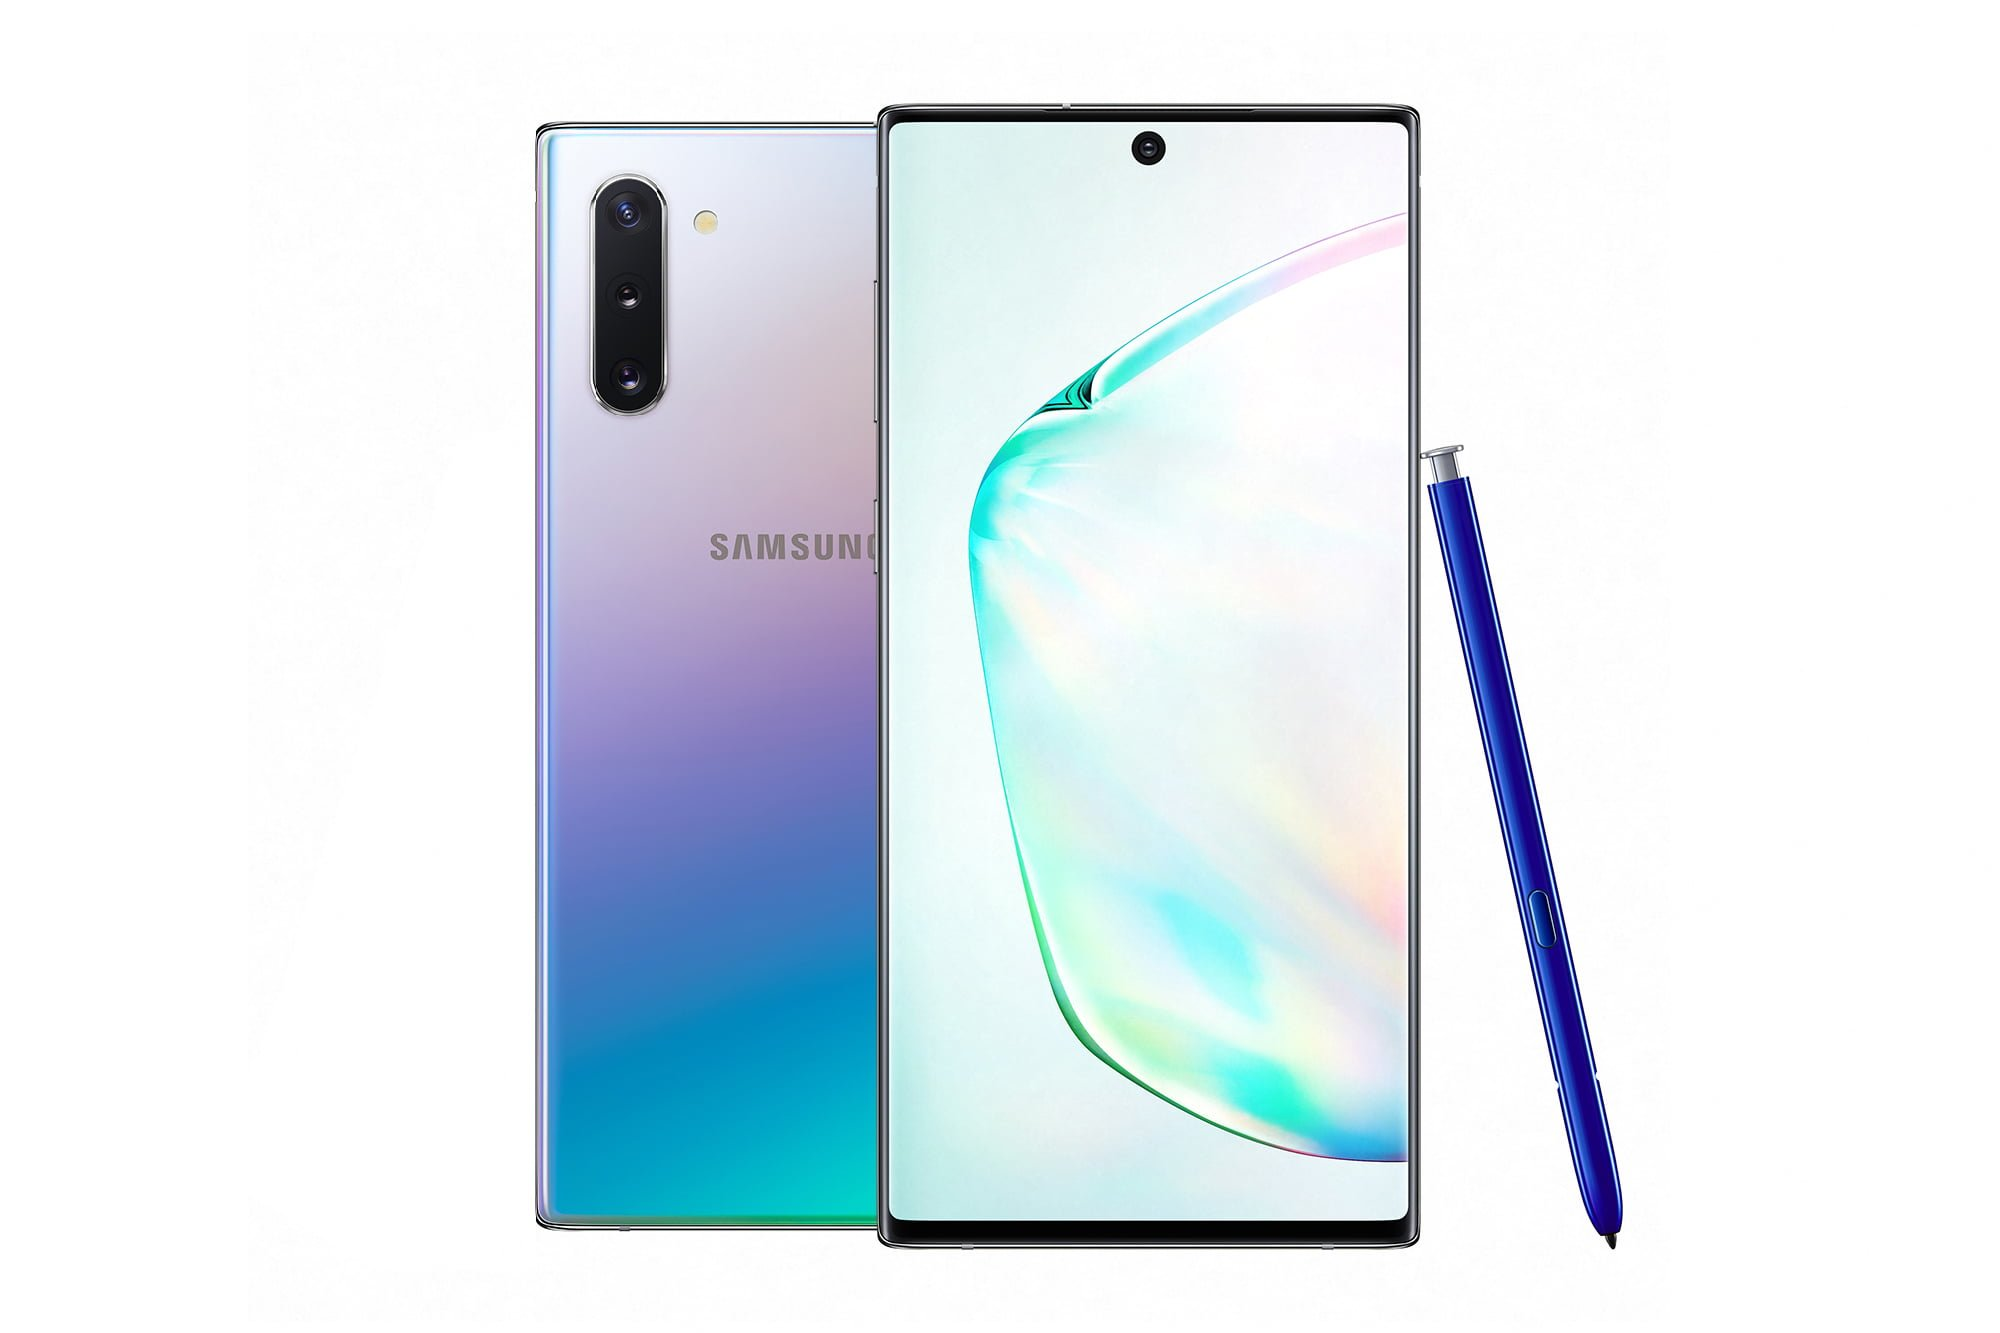 Presentato Il Nuovo Samsung Galaxy Note 10! S Pen Intelligente, Fotocamera Professionale 3 - Hynerd.it